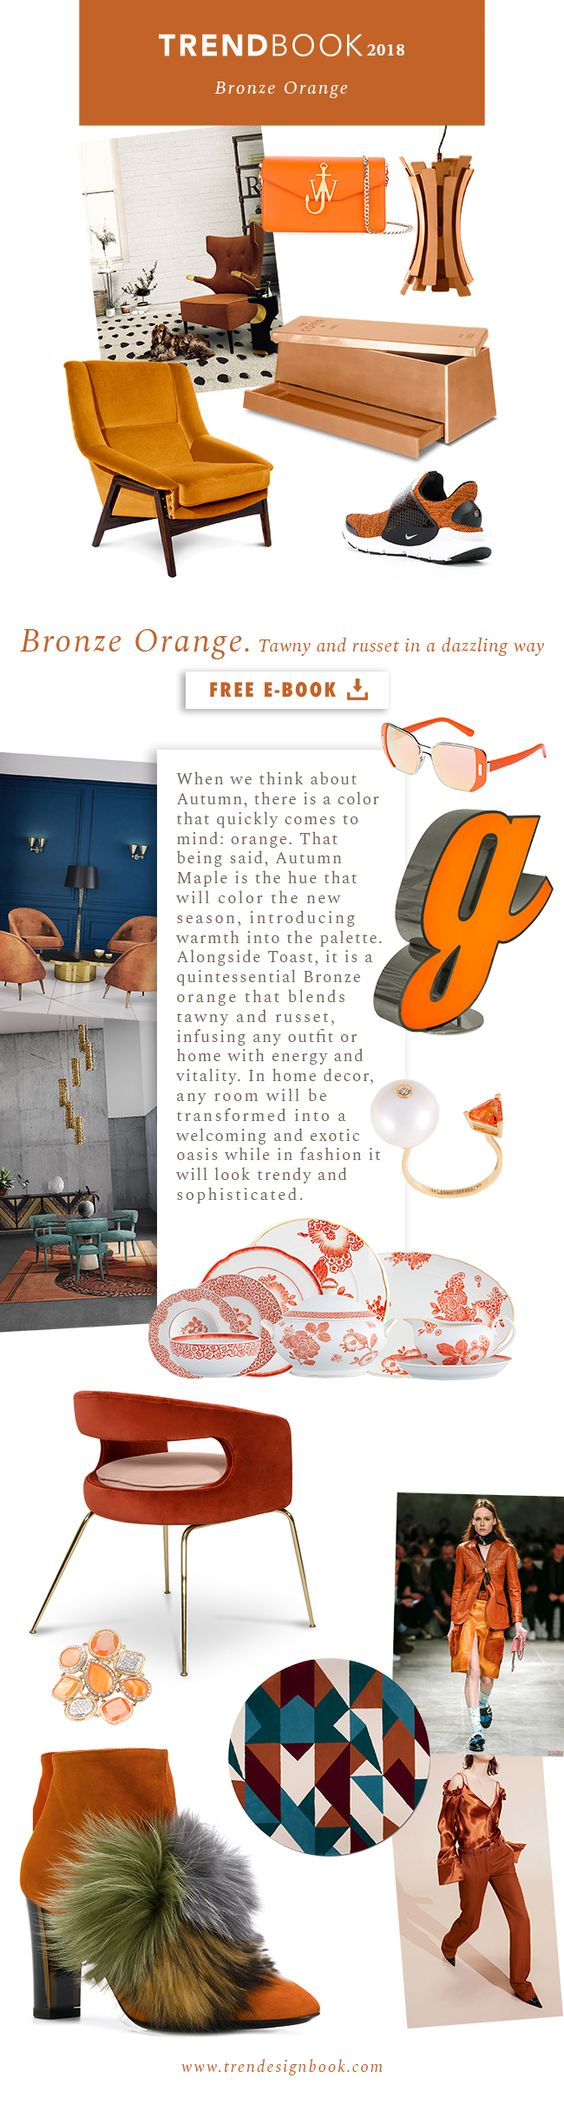 Color trends Fall/Winter 2017/18 Bronze Orange